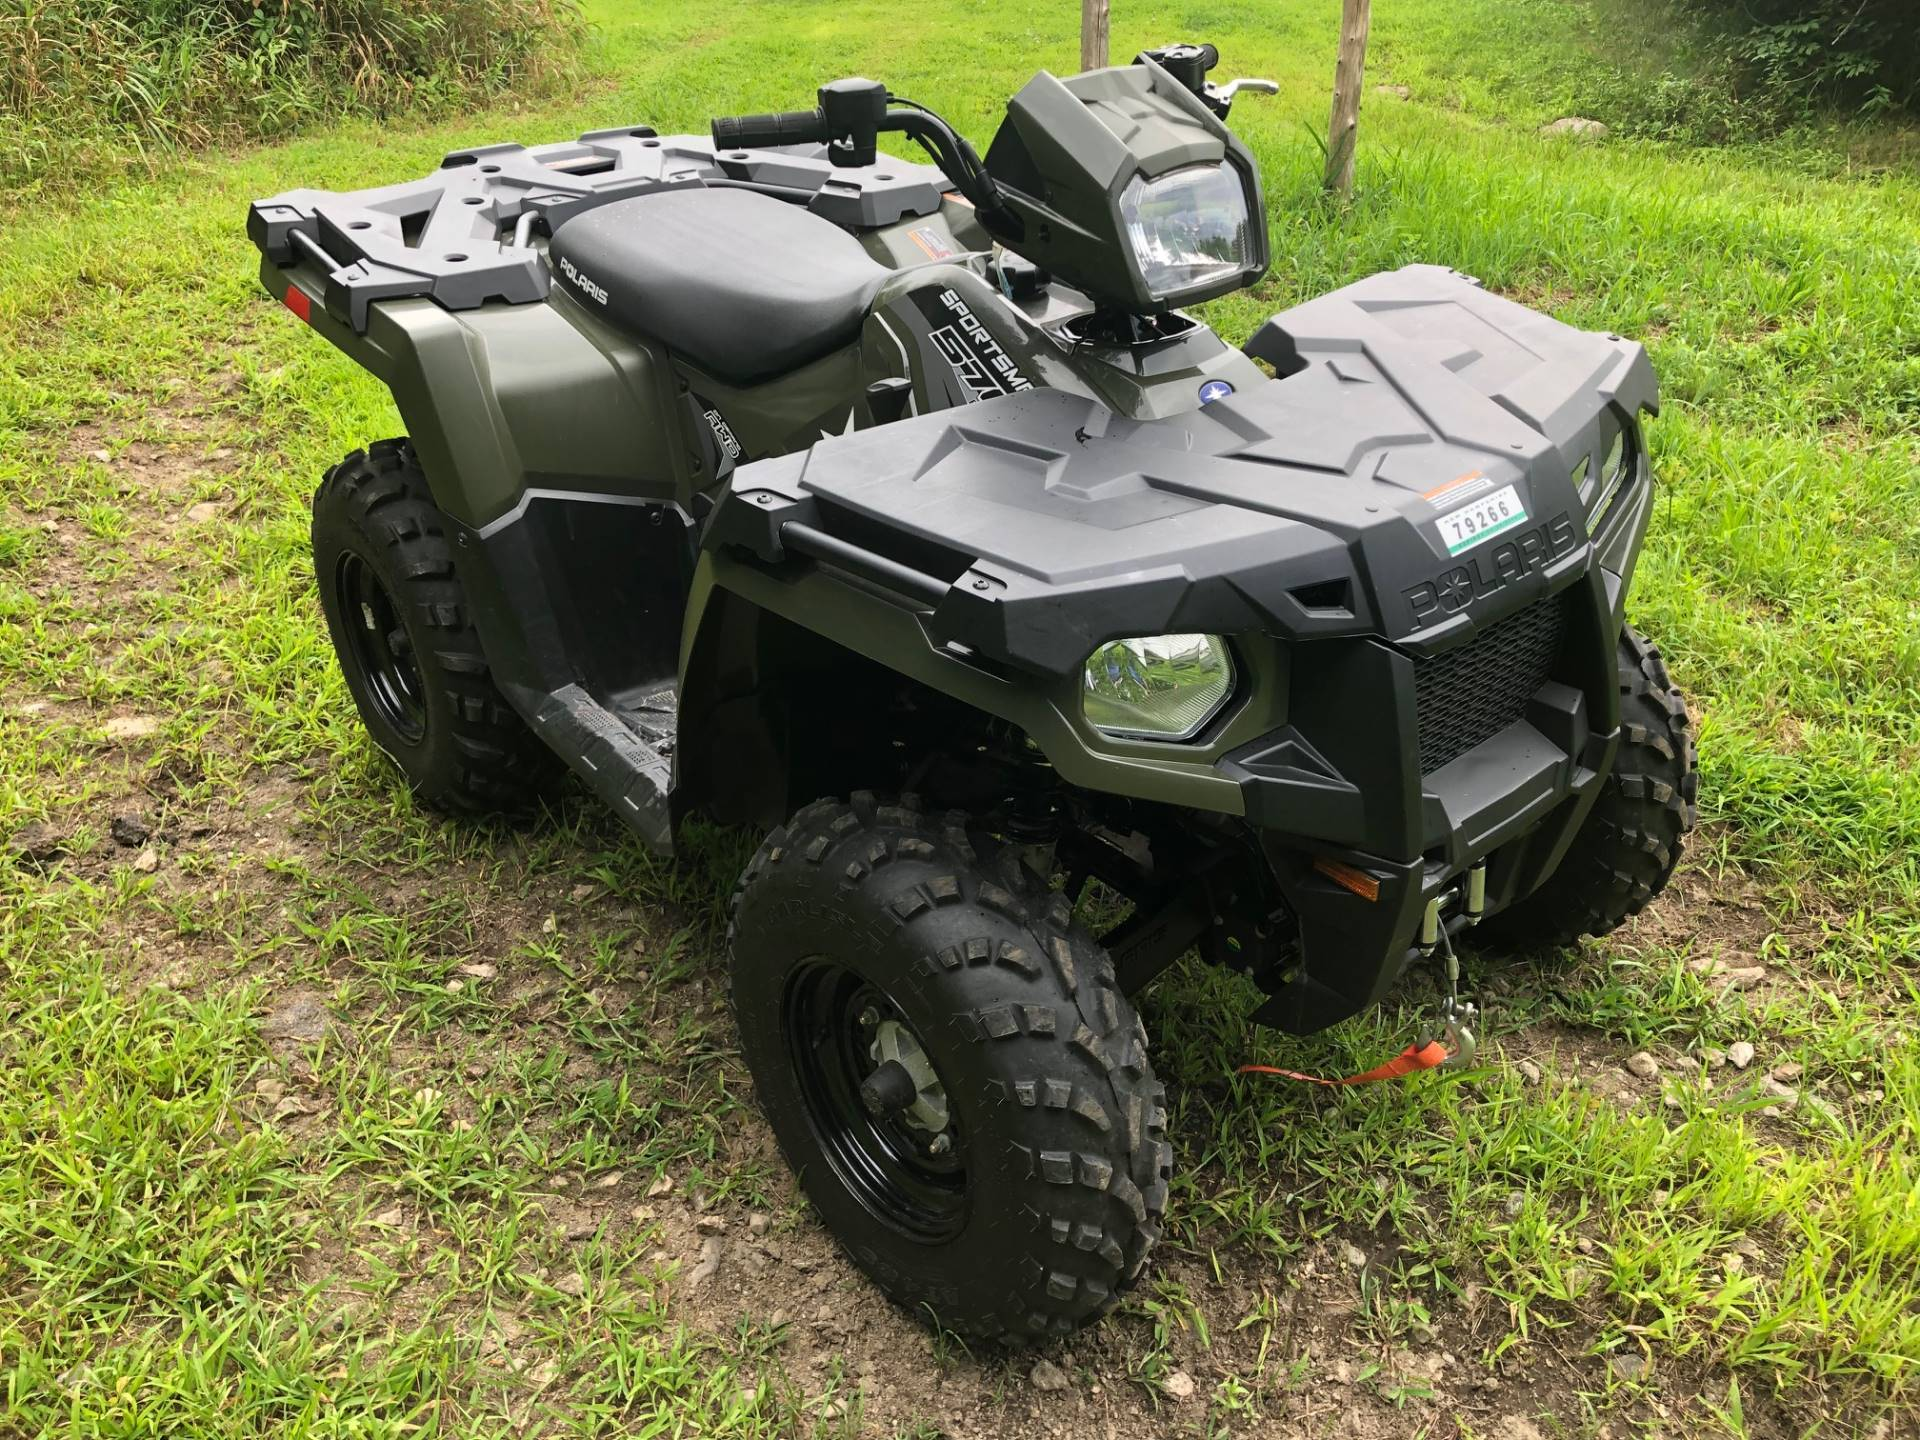 2018 Polaris Sportsman 570 in Milford, New Hampshire - Photo 2